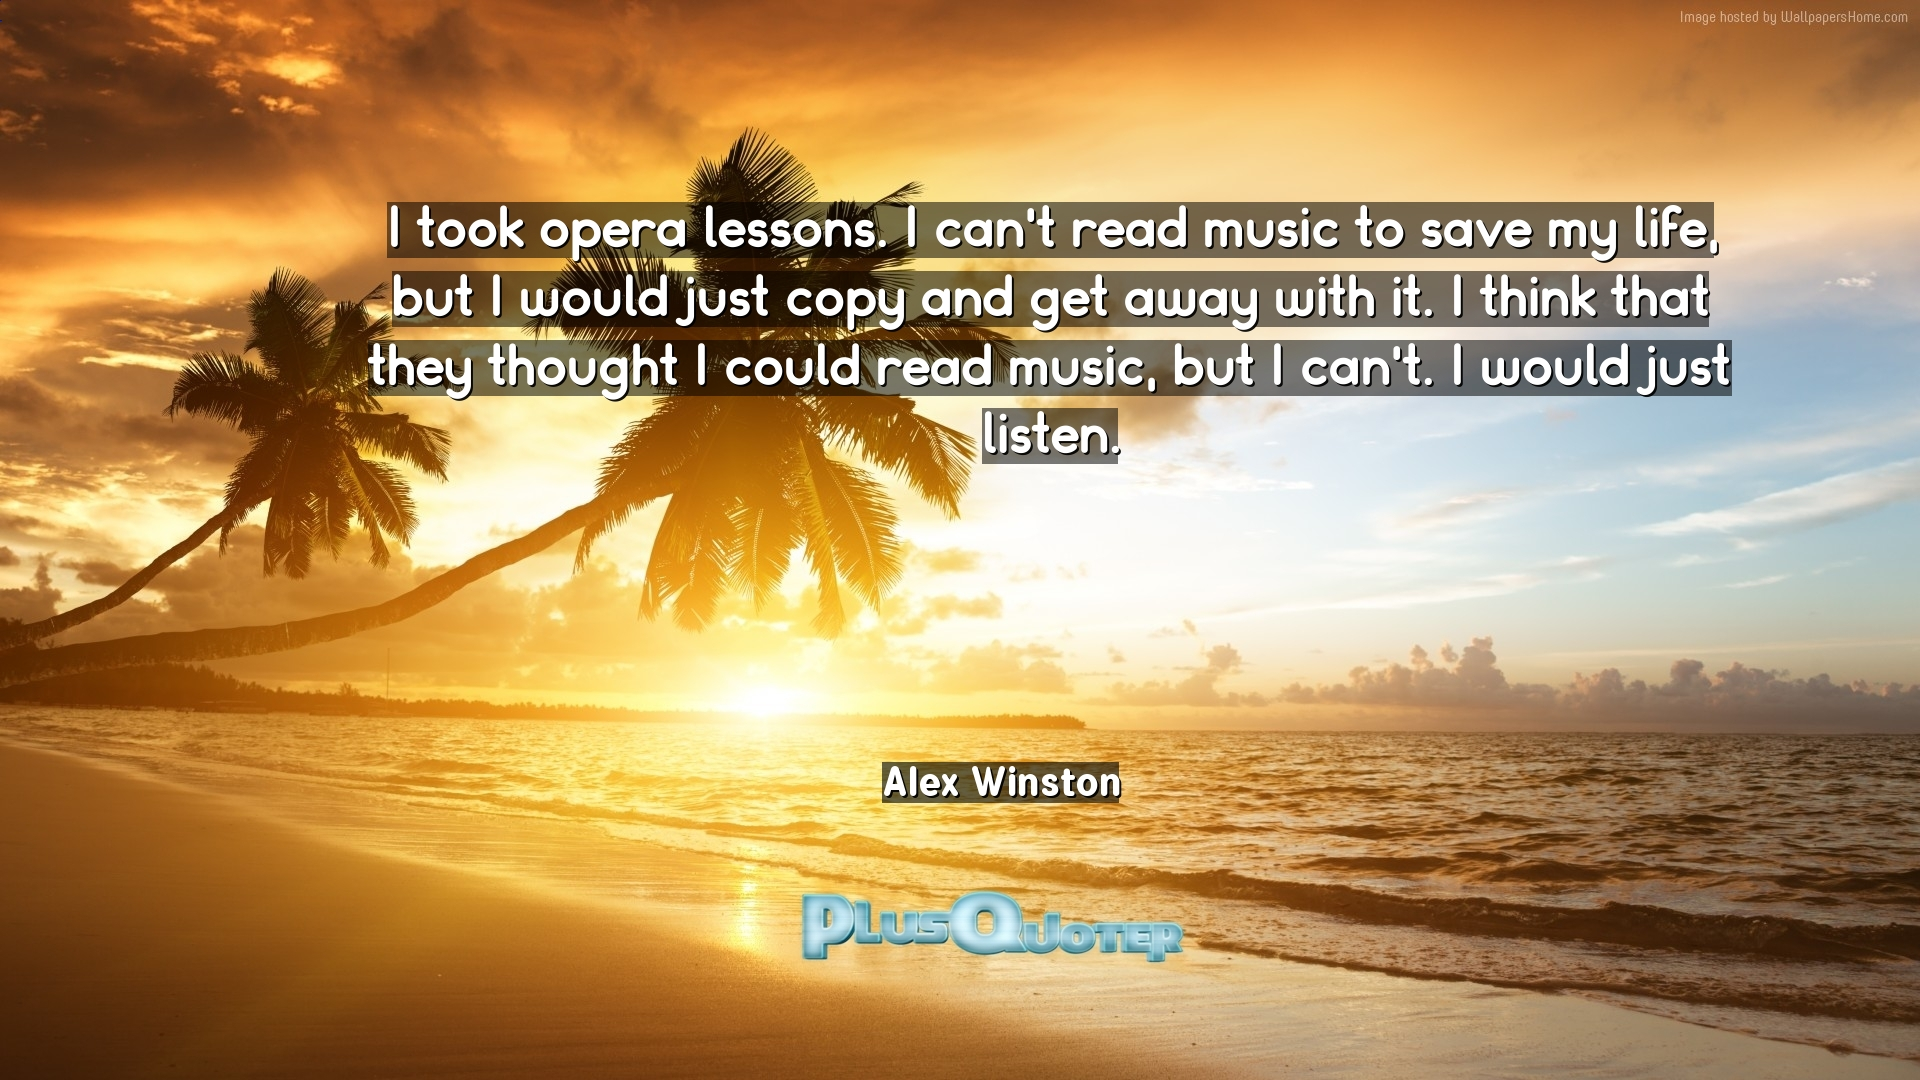 Inspirational Quotes About Music And Life Inspirational Quotes About Music And Life